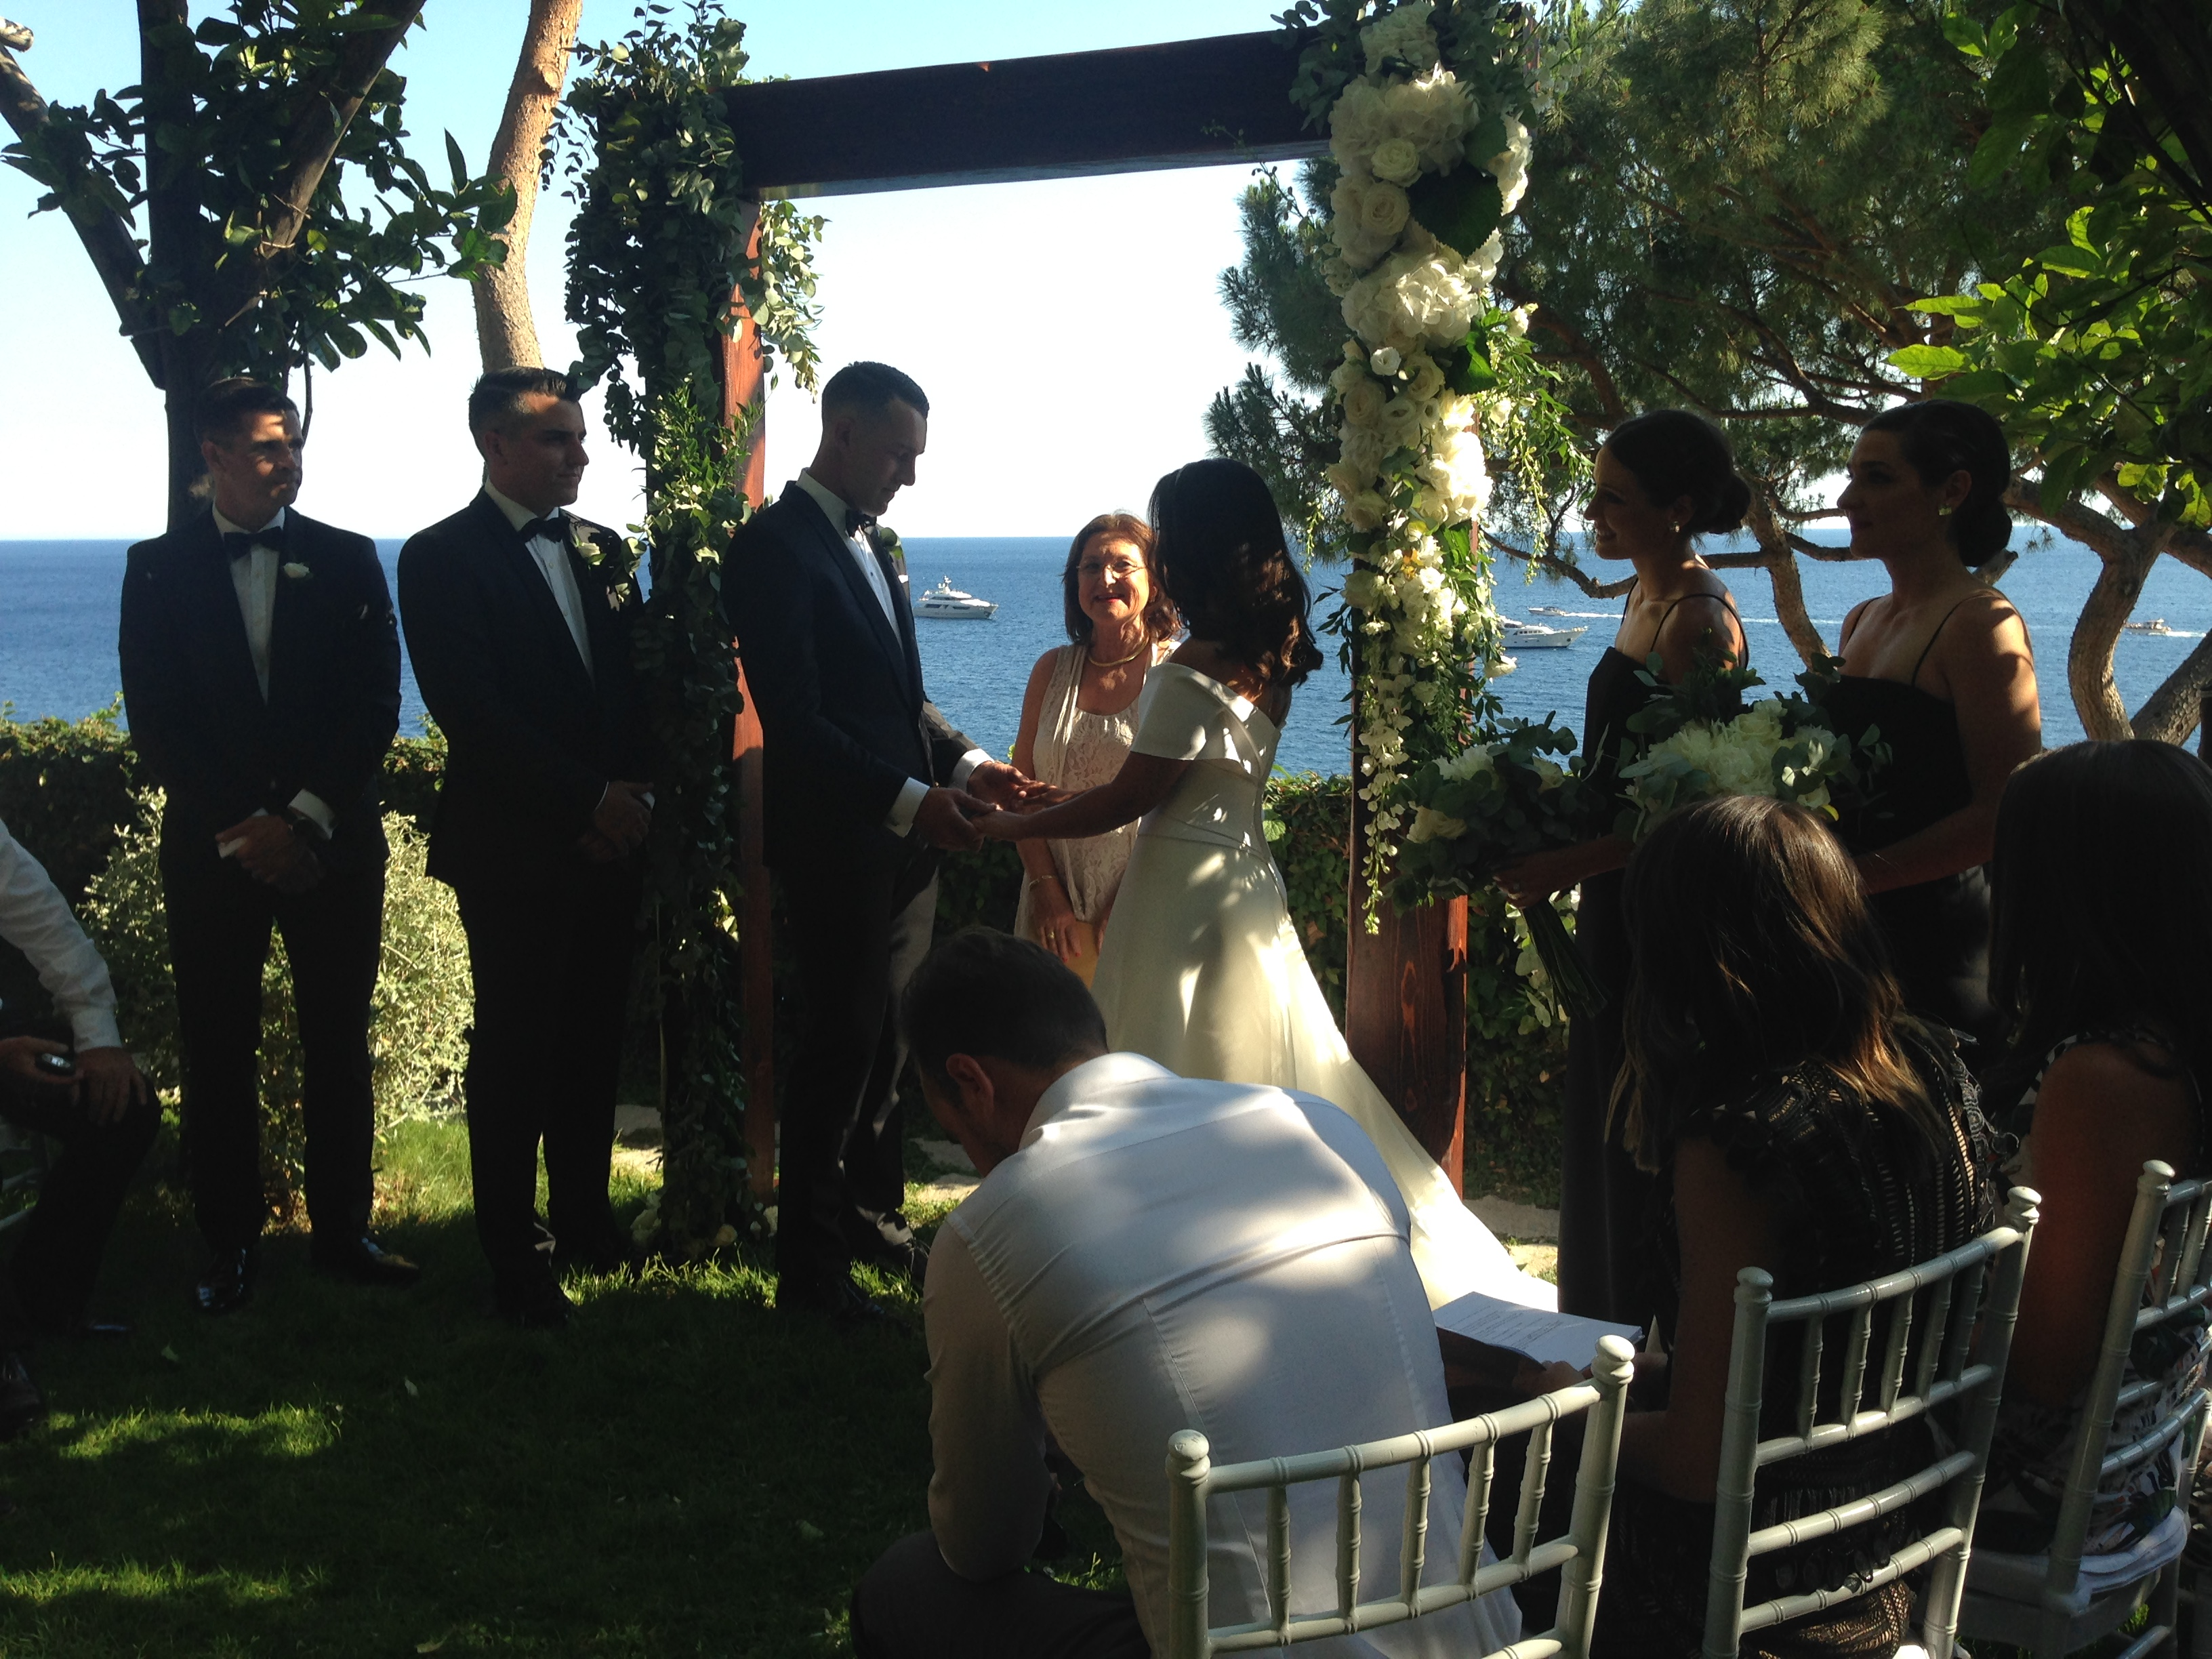 http://www.weddingamalfi.com/wp-content/uploads/Laura-and-Jarrod-al-fresco-wedding-ceremony.jpg